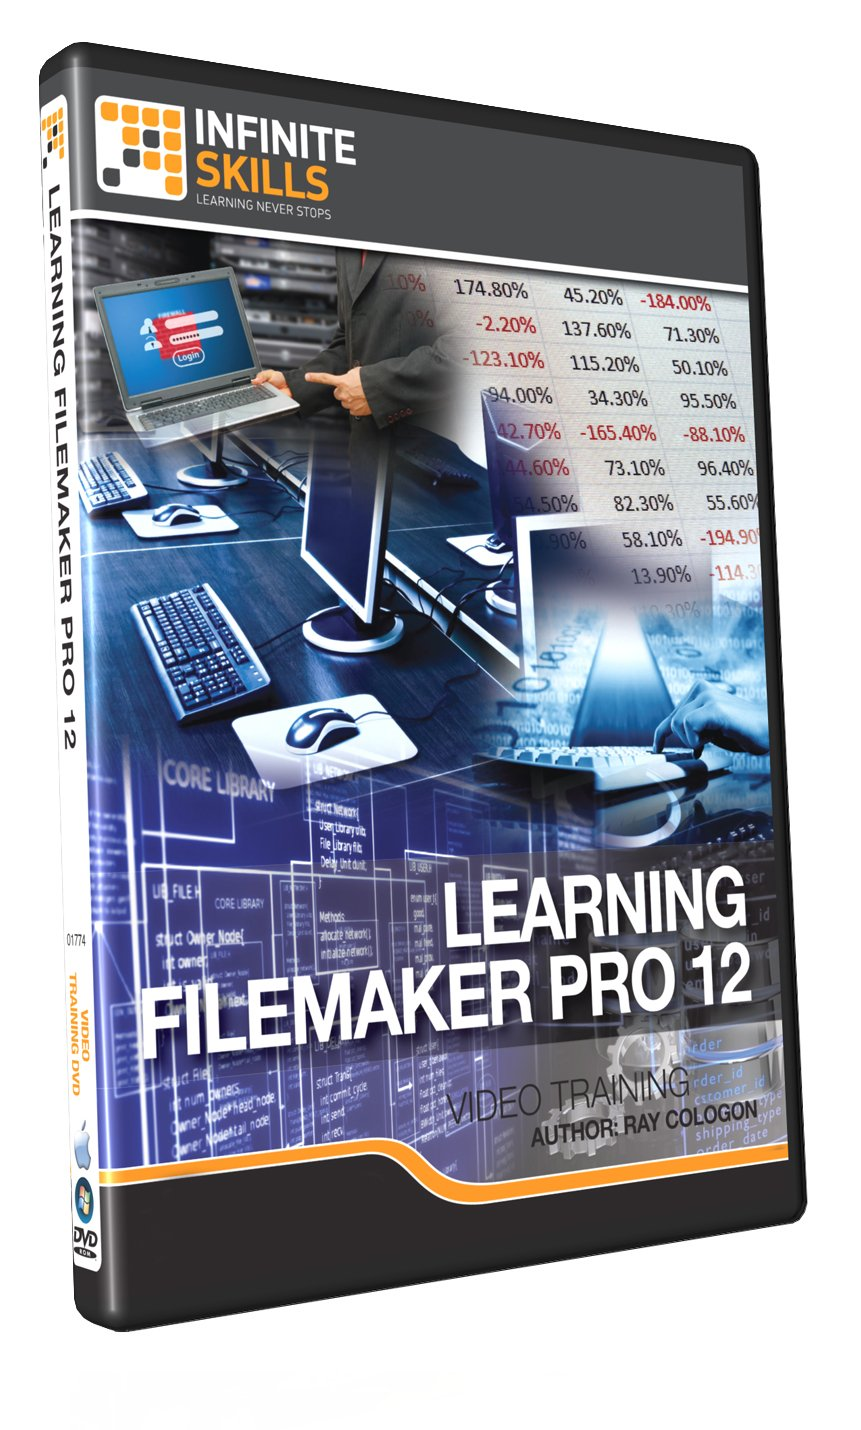 Infinite skills learning filemaker pro 12 cheap price